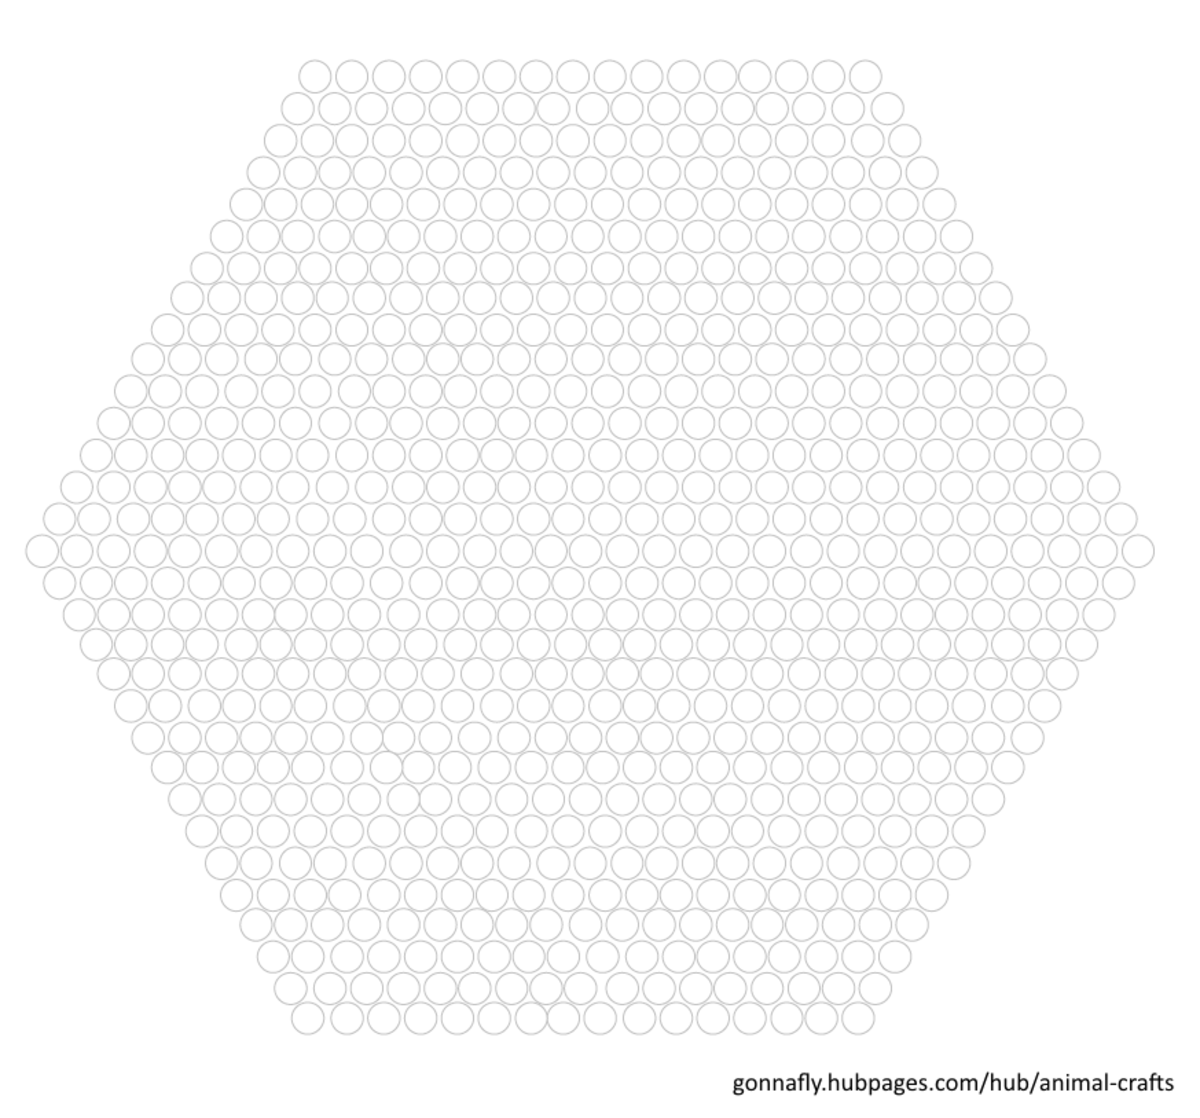 blank fuse bead hexagon template for other projects